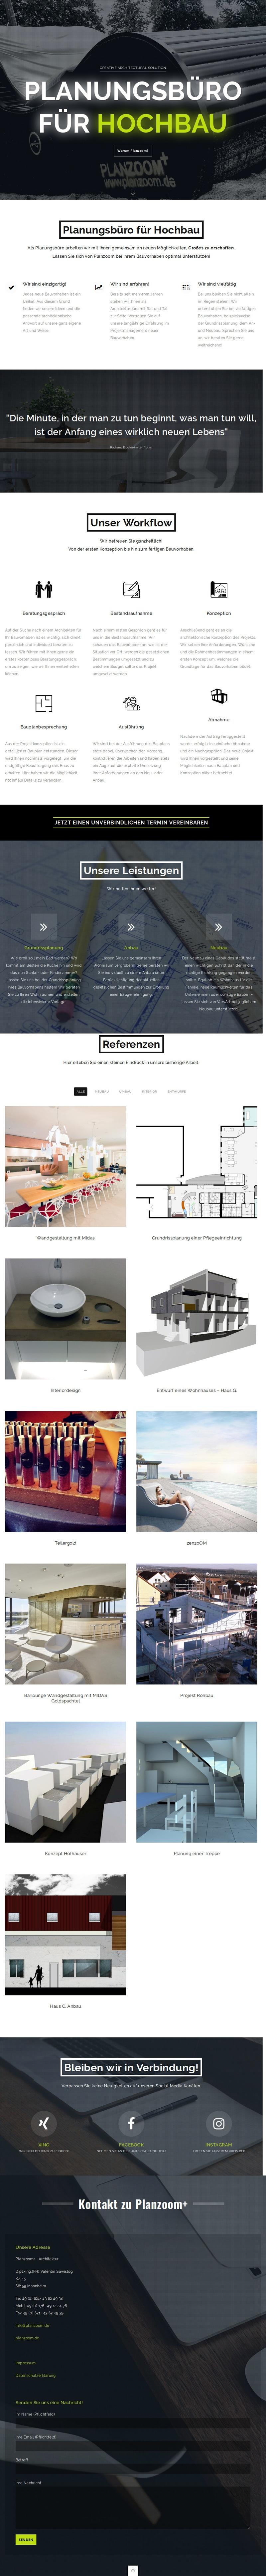 PLANZOOM+ creative architectural solution